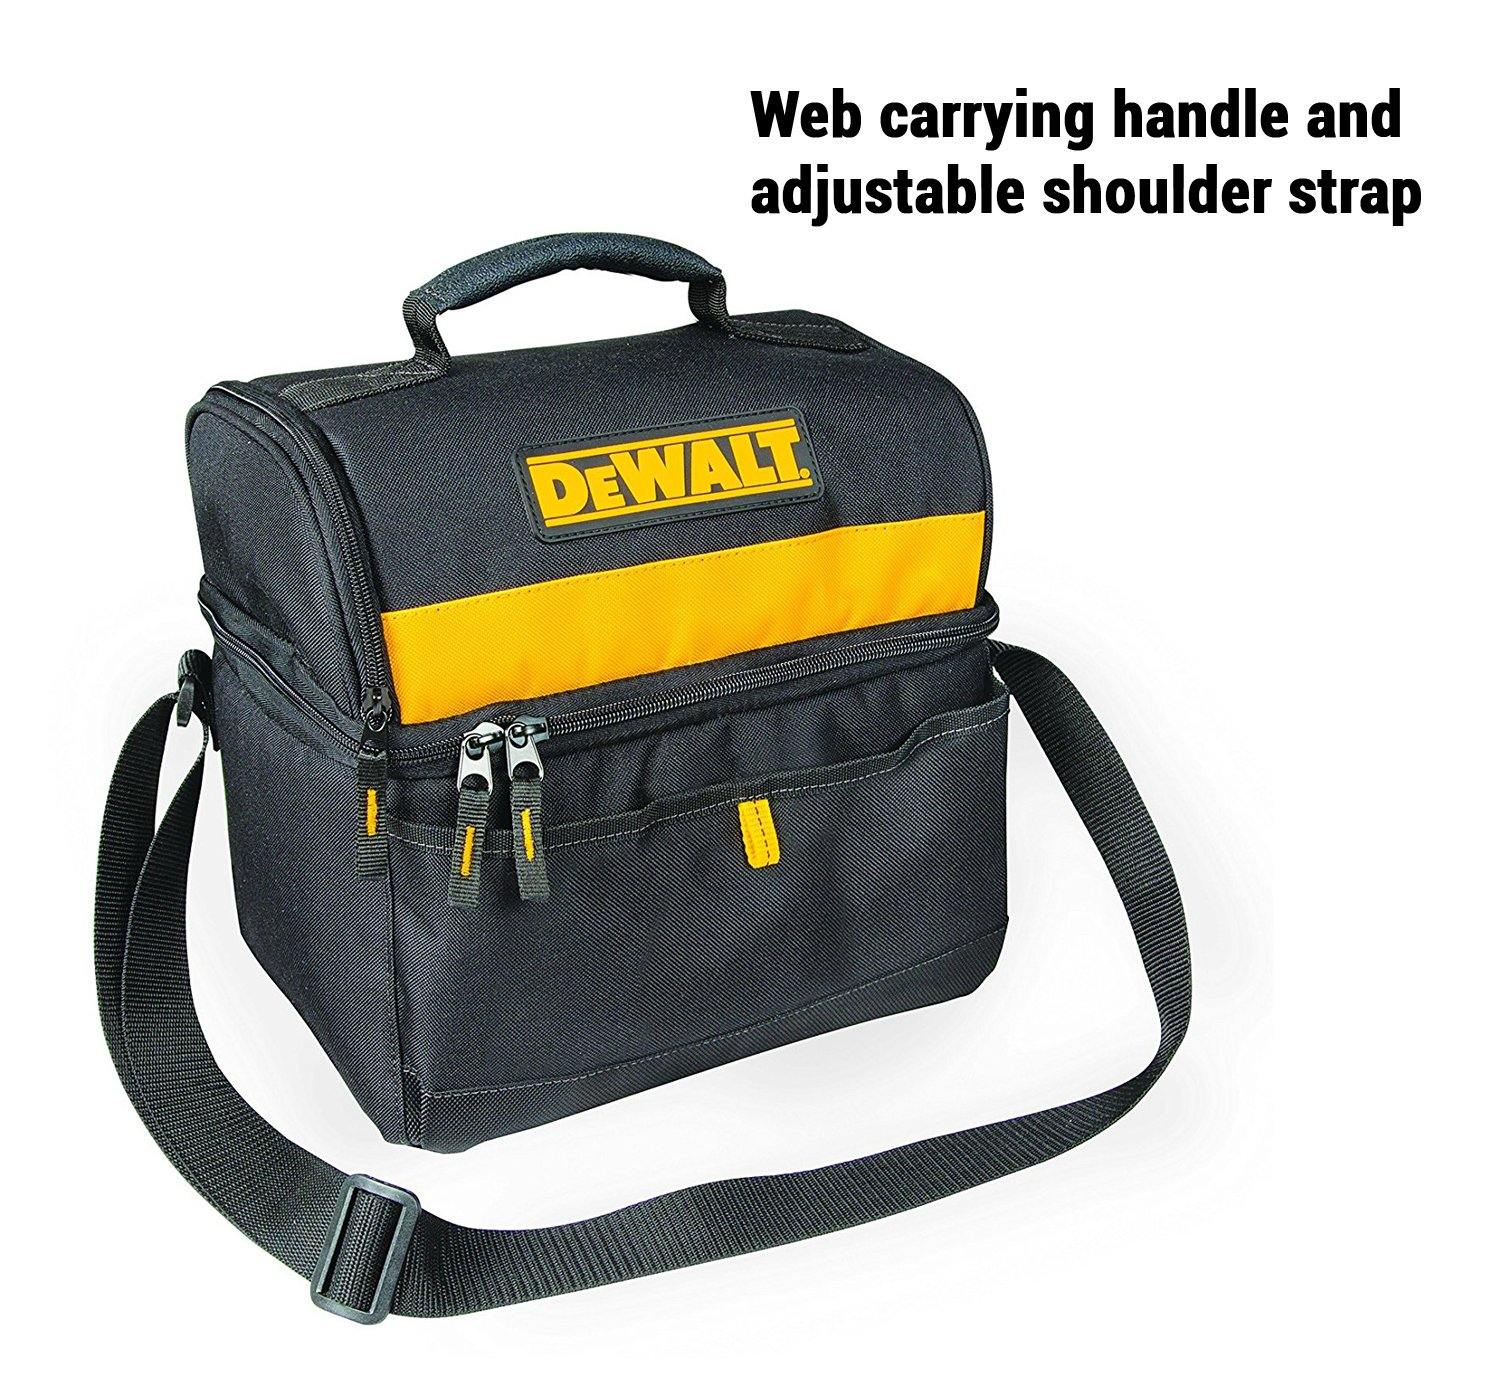 DEWALT DG5540 Cooler Tool Bag, 11 in. by DEWALT (Image #4)